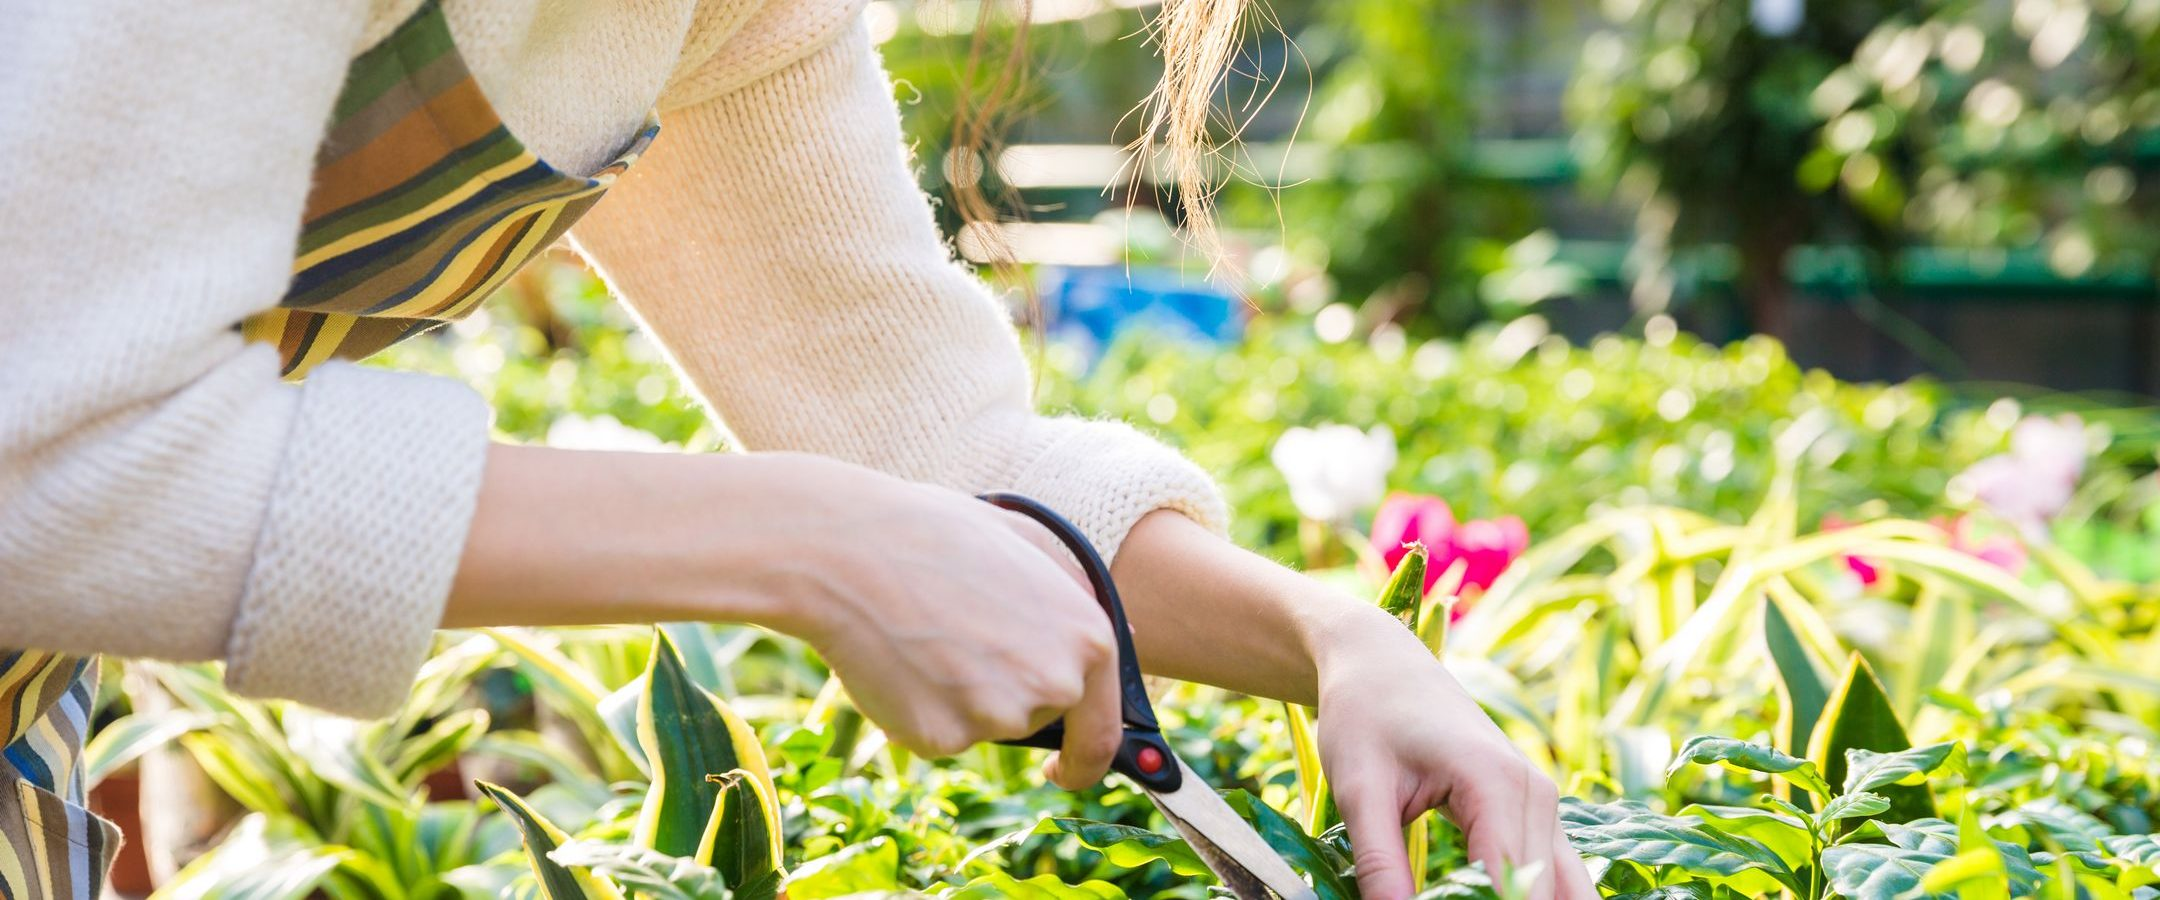 Cute young woman gardener cutting plants with garden scissors in greenhouse